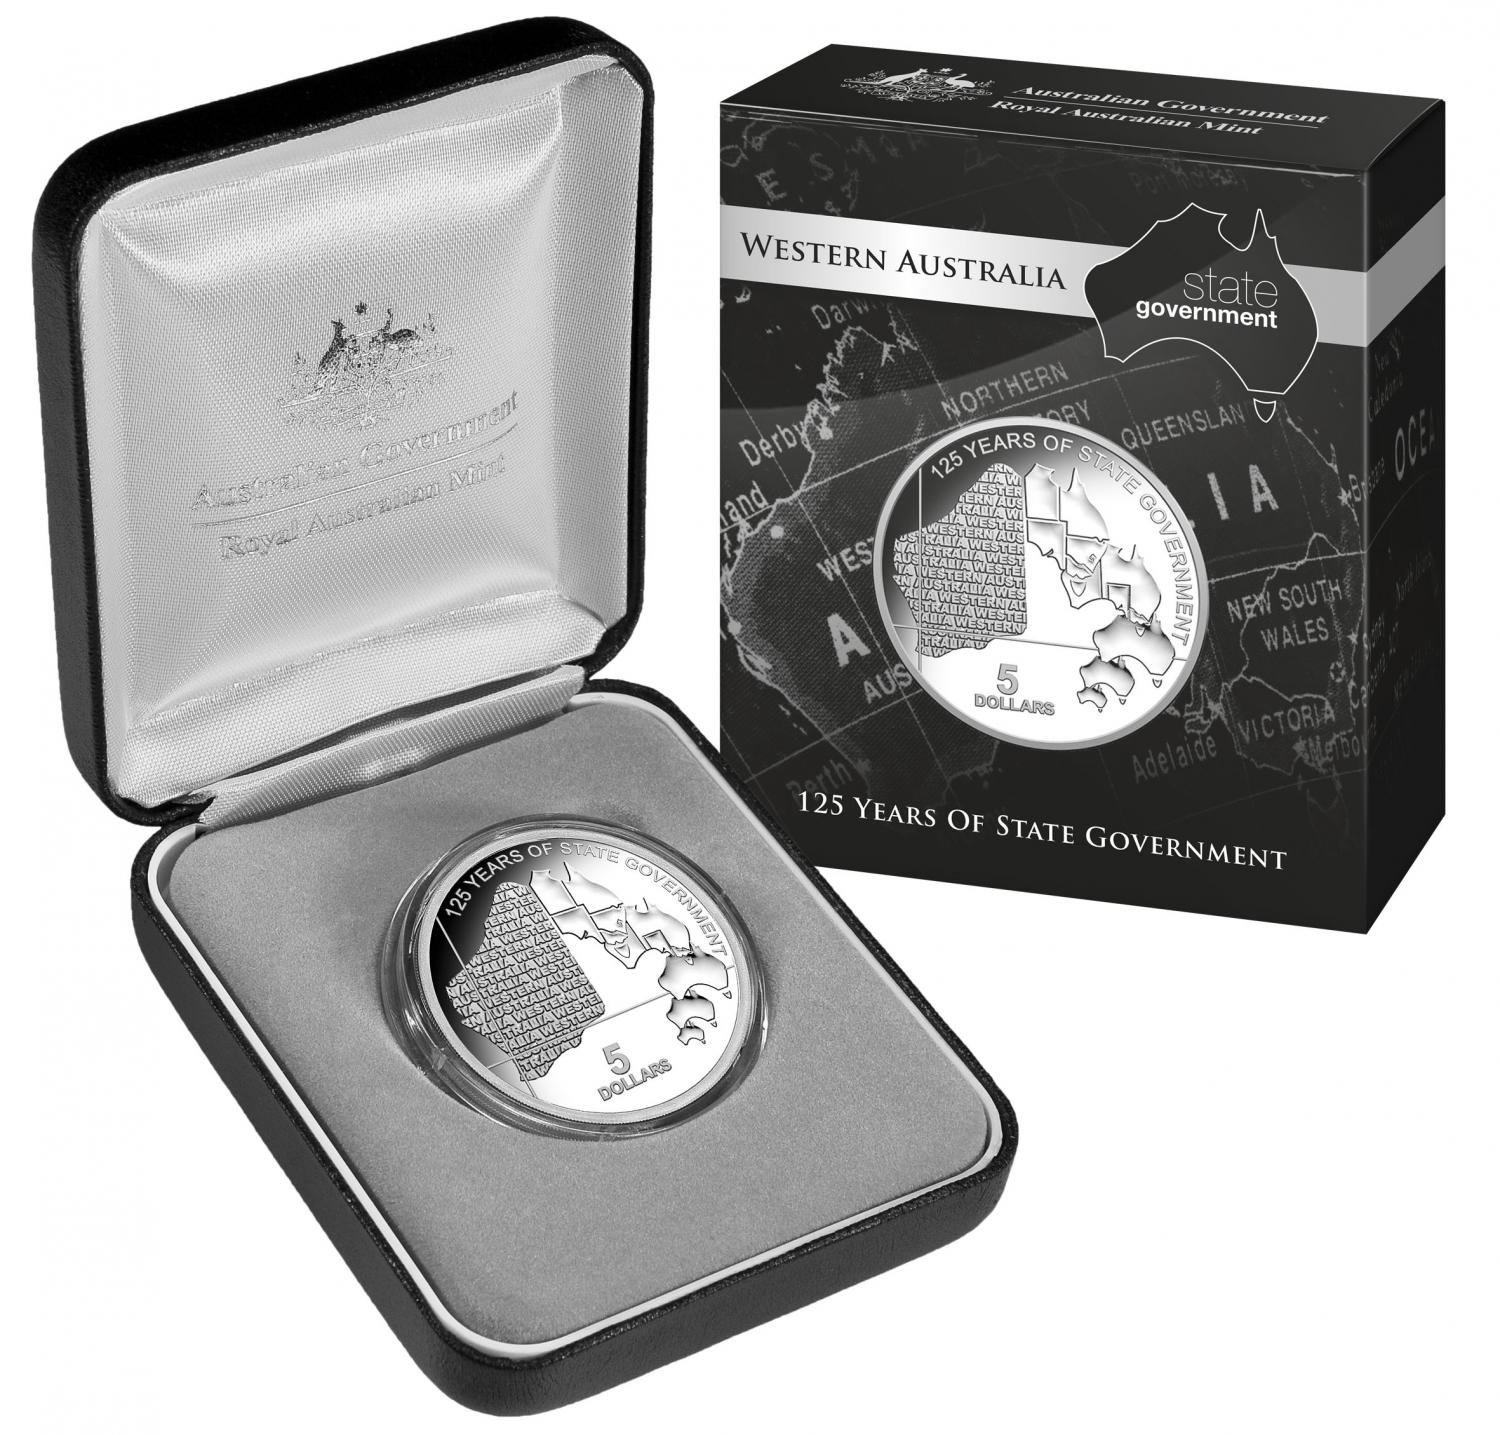 Thumbnail for 2015 $5.00 Silver Proof Western Australia 125 Years of State Government